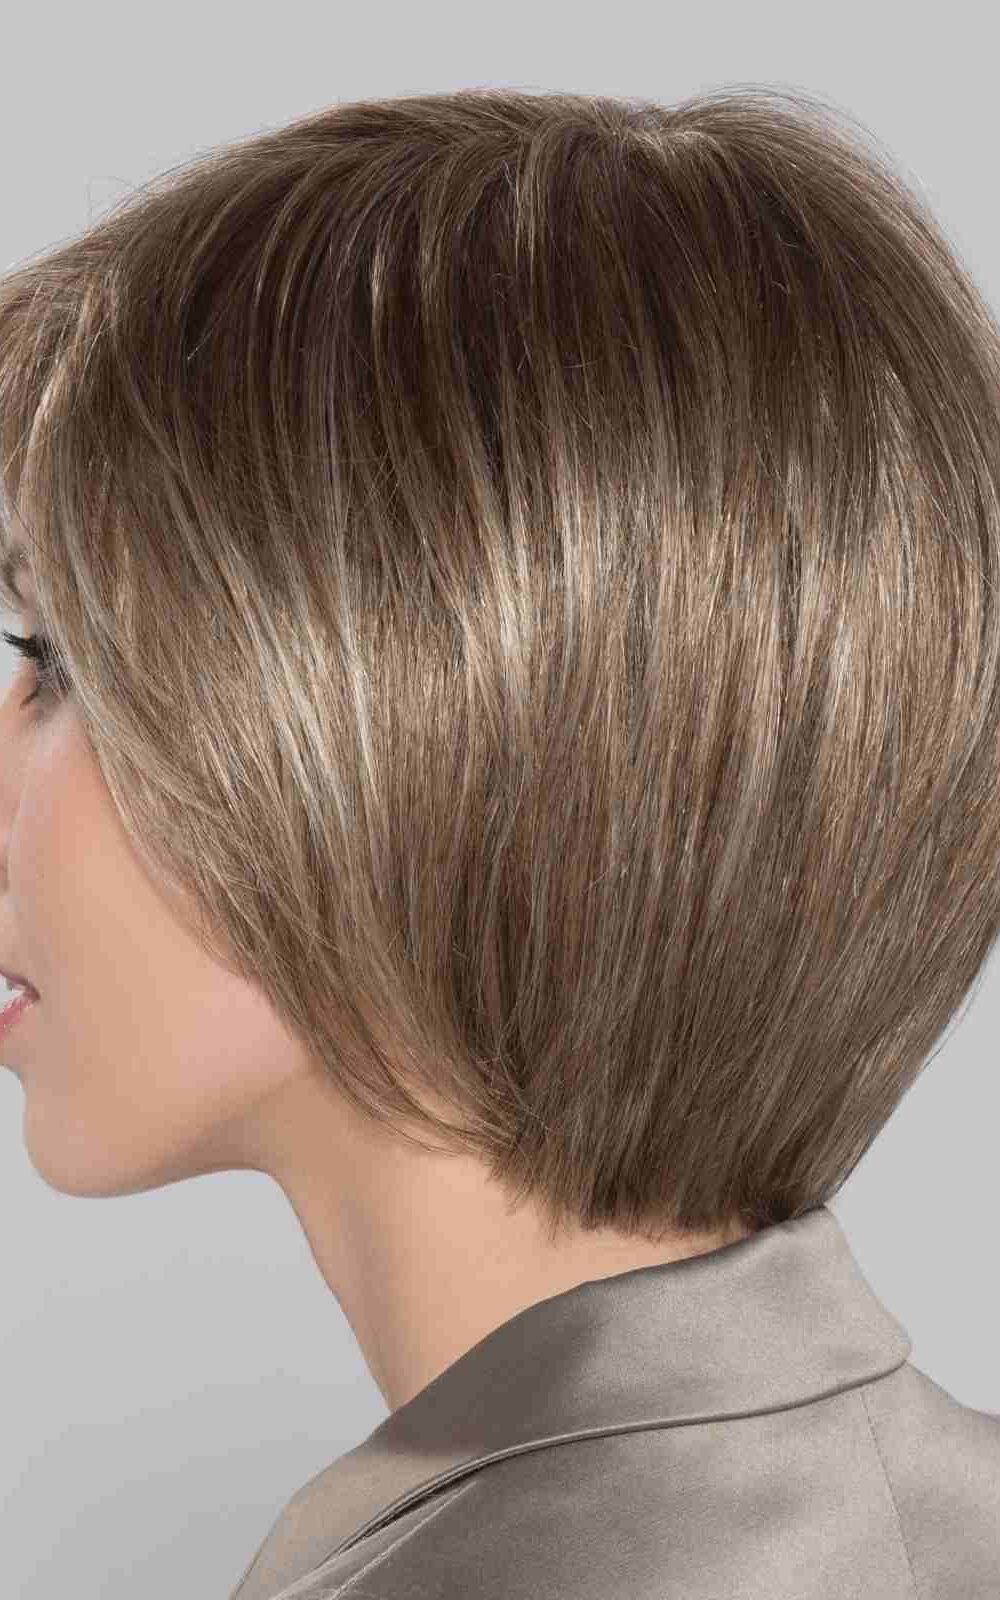 Shine Comfort Wig by Ellen Wille is a shorter length bob.  With a 100% hand-tied cap and a fine elastic tulle crown